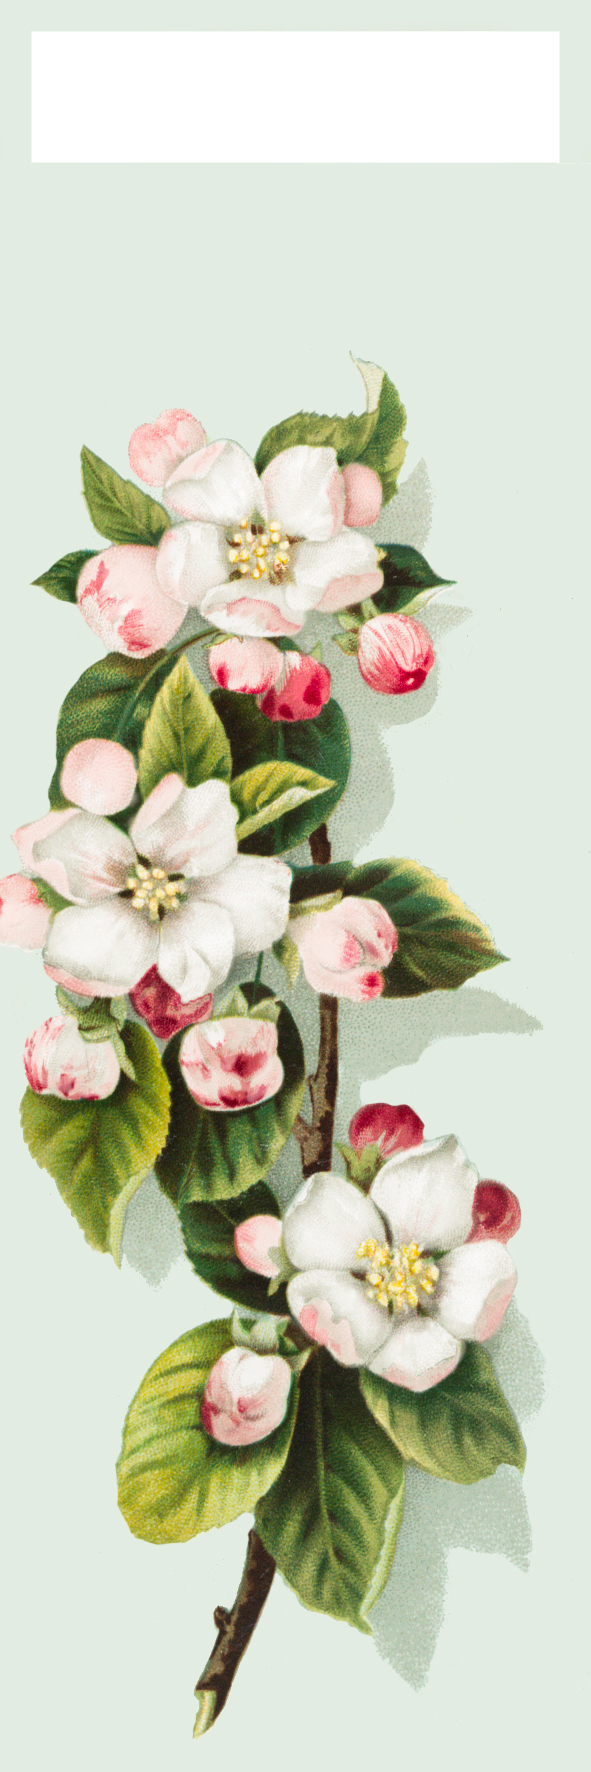 apple blossom bookmark to print